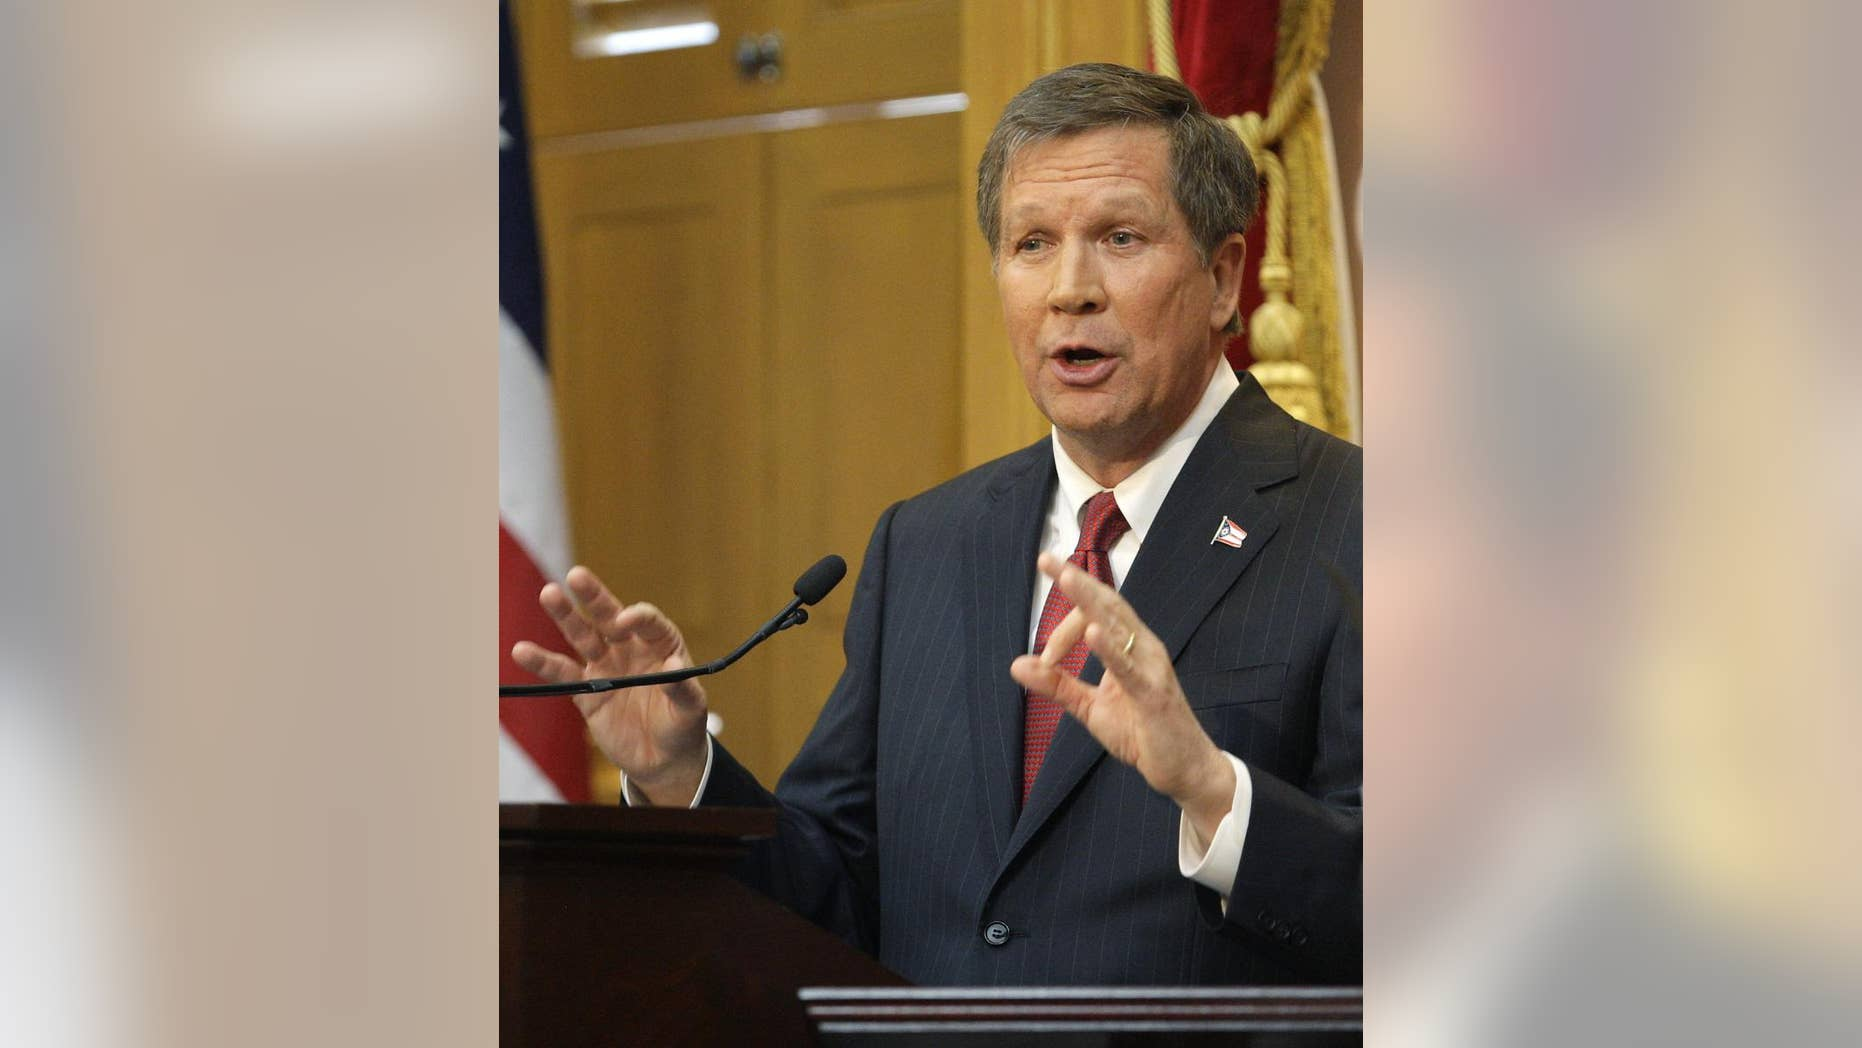 Ohio Gov. John Kasich delivers the State of the State address Tuesday, March 8, 2011, in Columbus, Ohio. (AP Photo/Jay LaPrete)